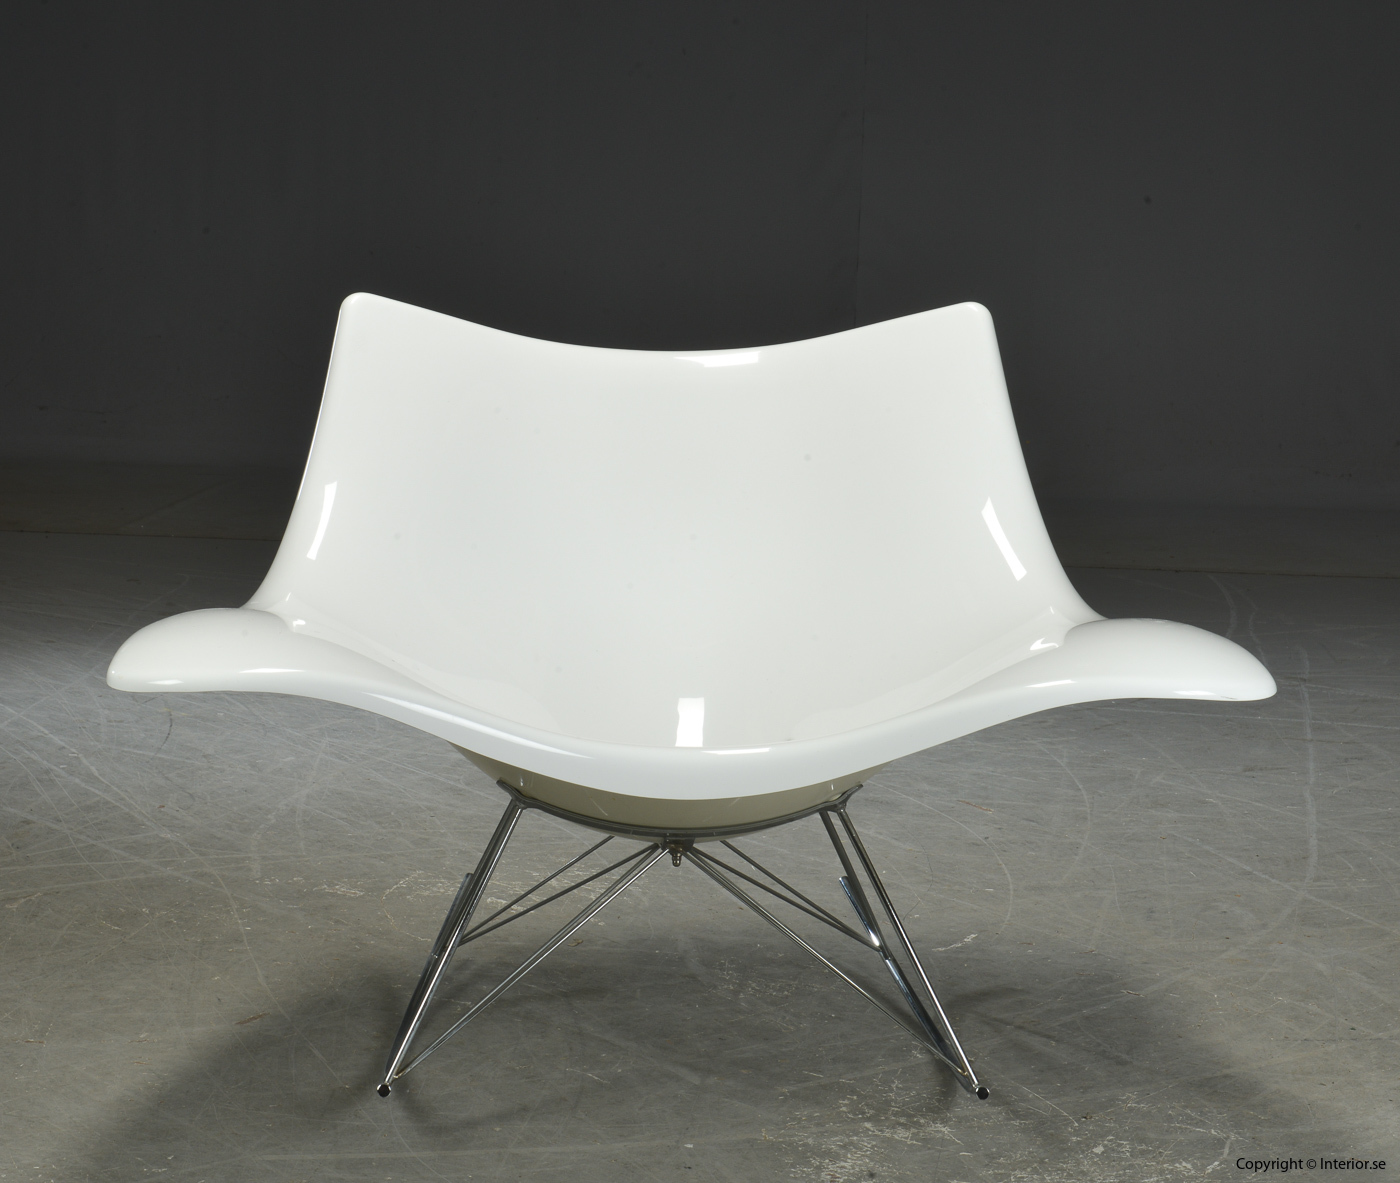 Gungstol rocking chair Schaukelstuhl, Vit Stingray Fredericia Furniture - Design Thomas Pedersen 2